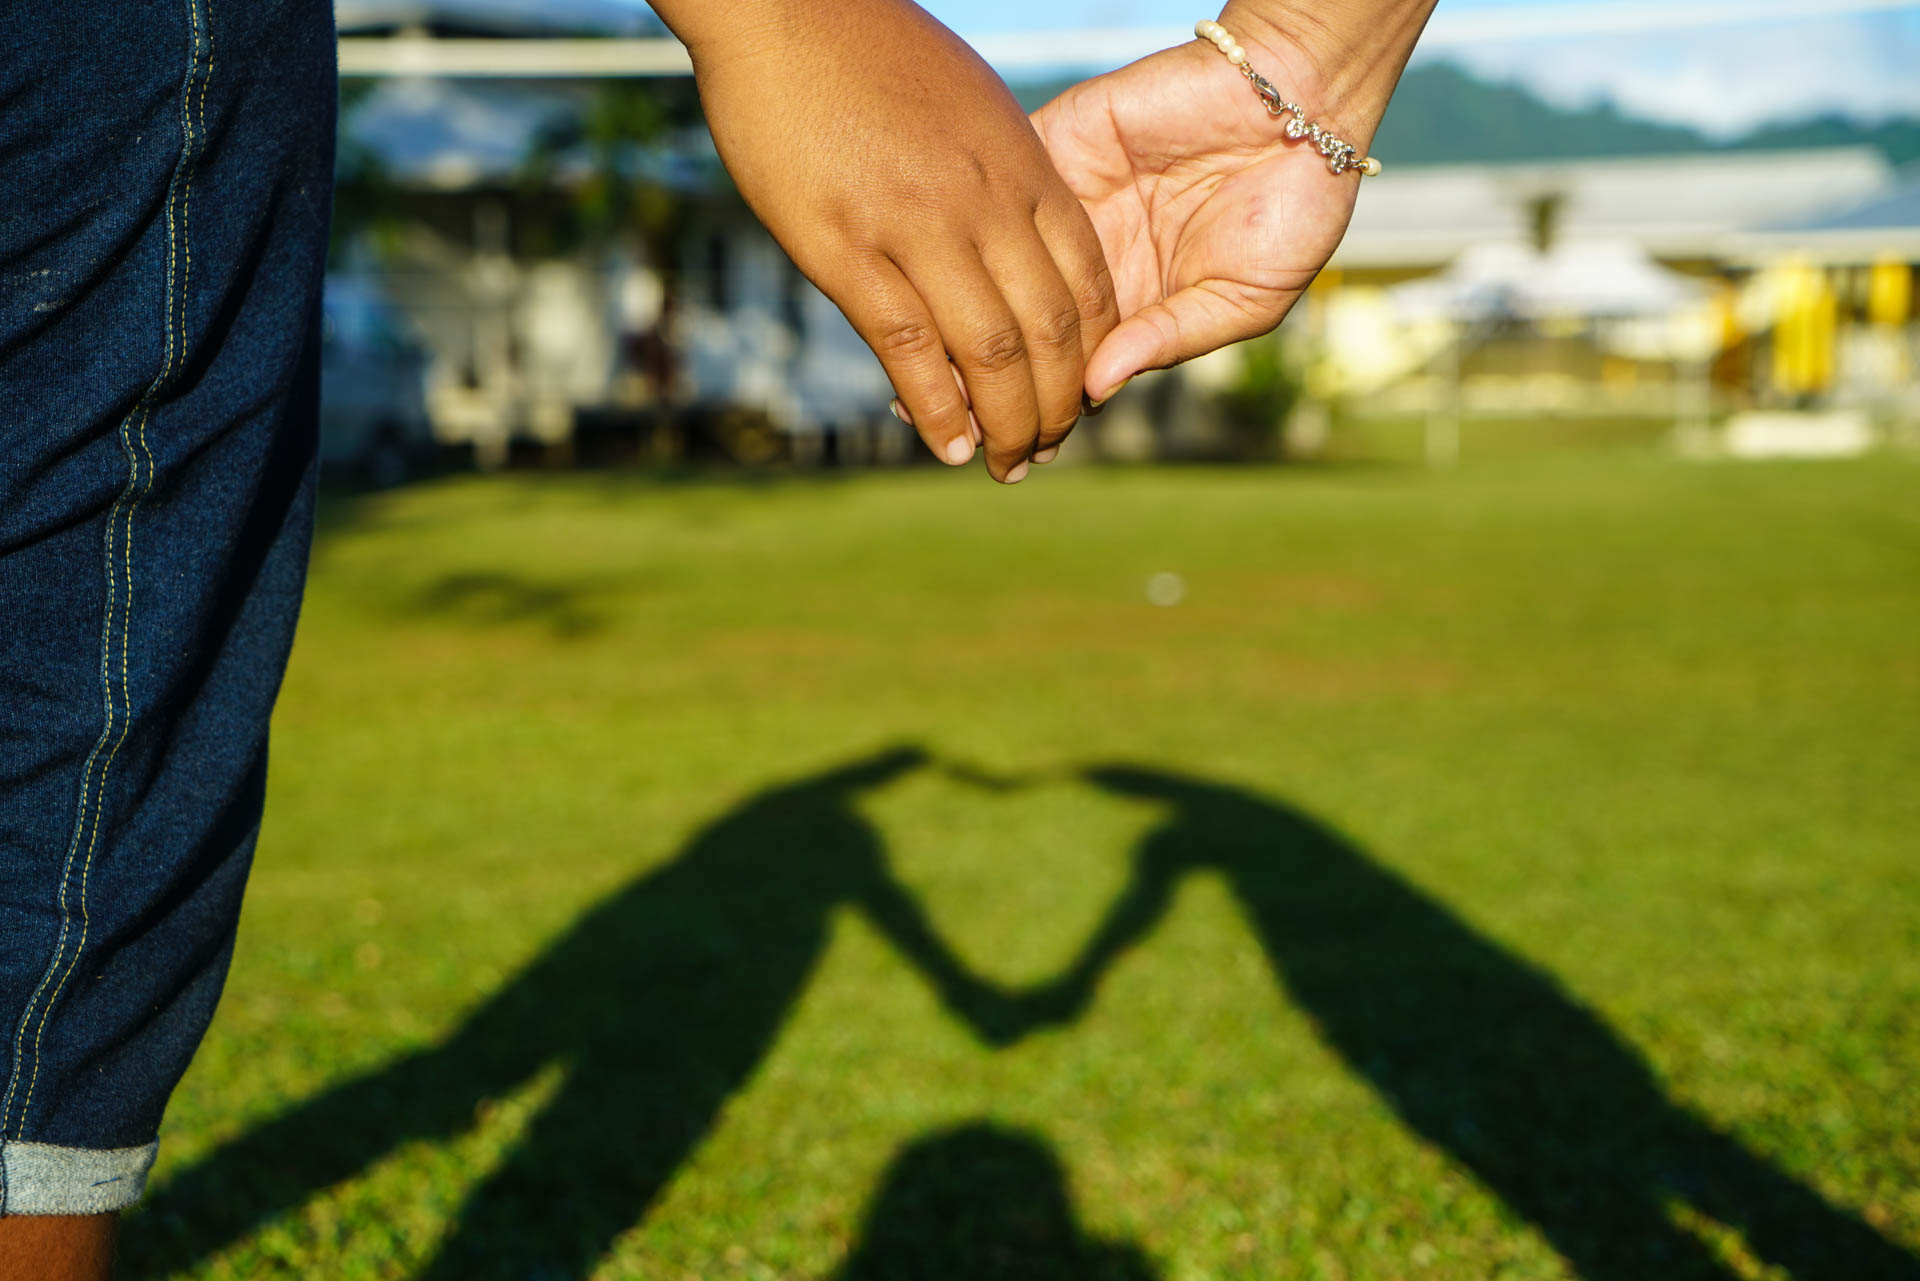 Two survivors of violence hold hands to form a heart at the Campus of Hope